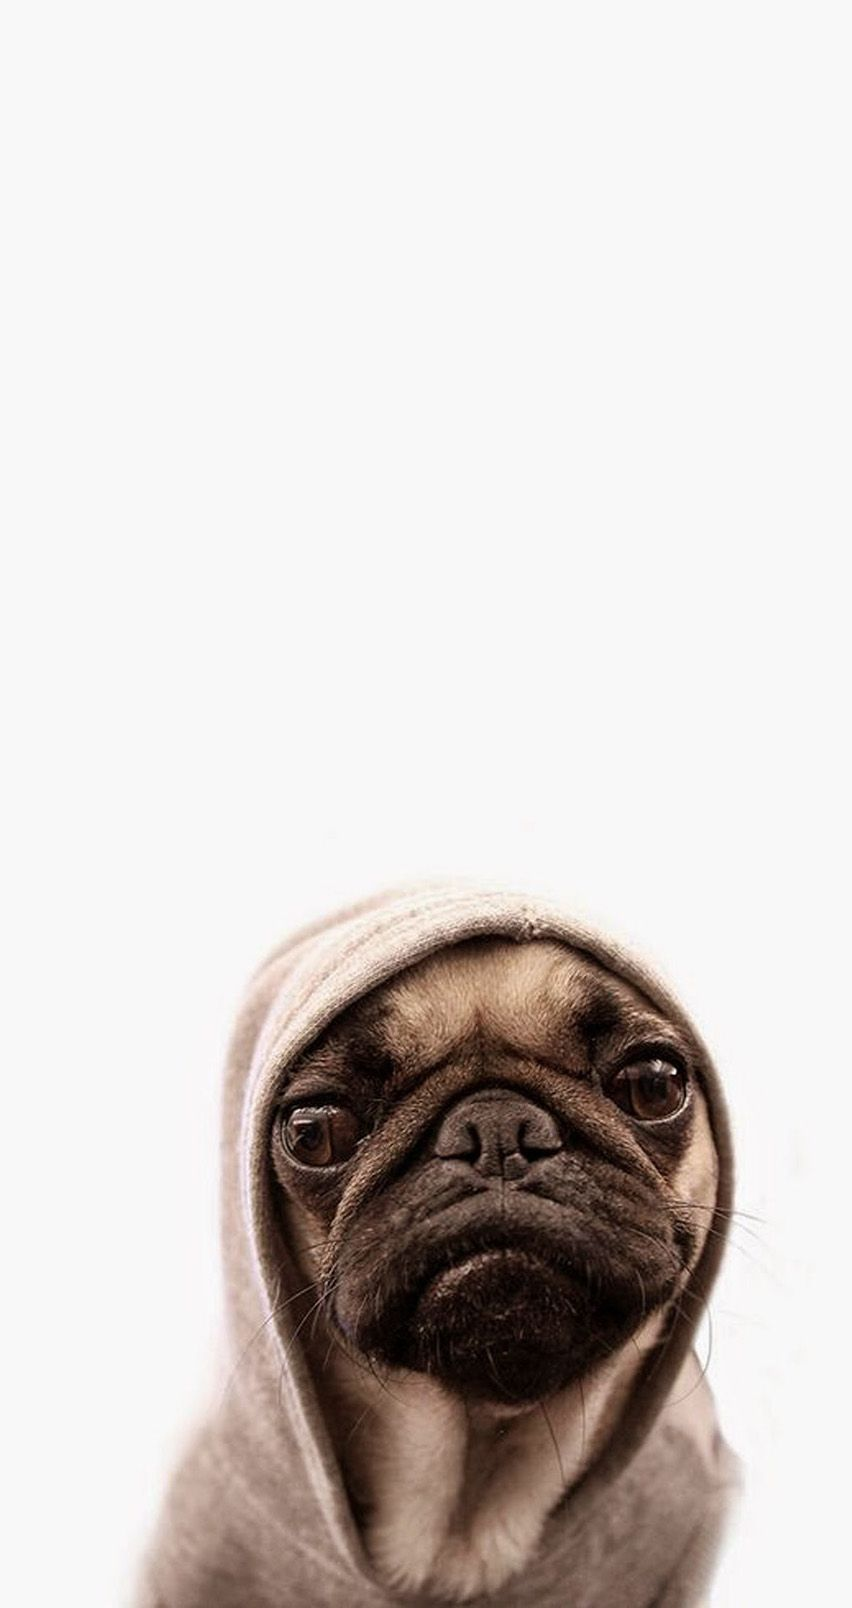 Cute Pug Wallpapers 852 X 1608 Wallpapers Dostupny Dlya Besplatnogo